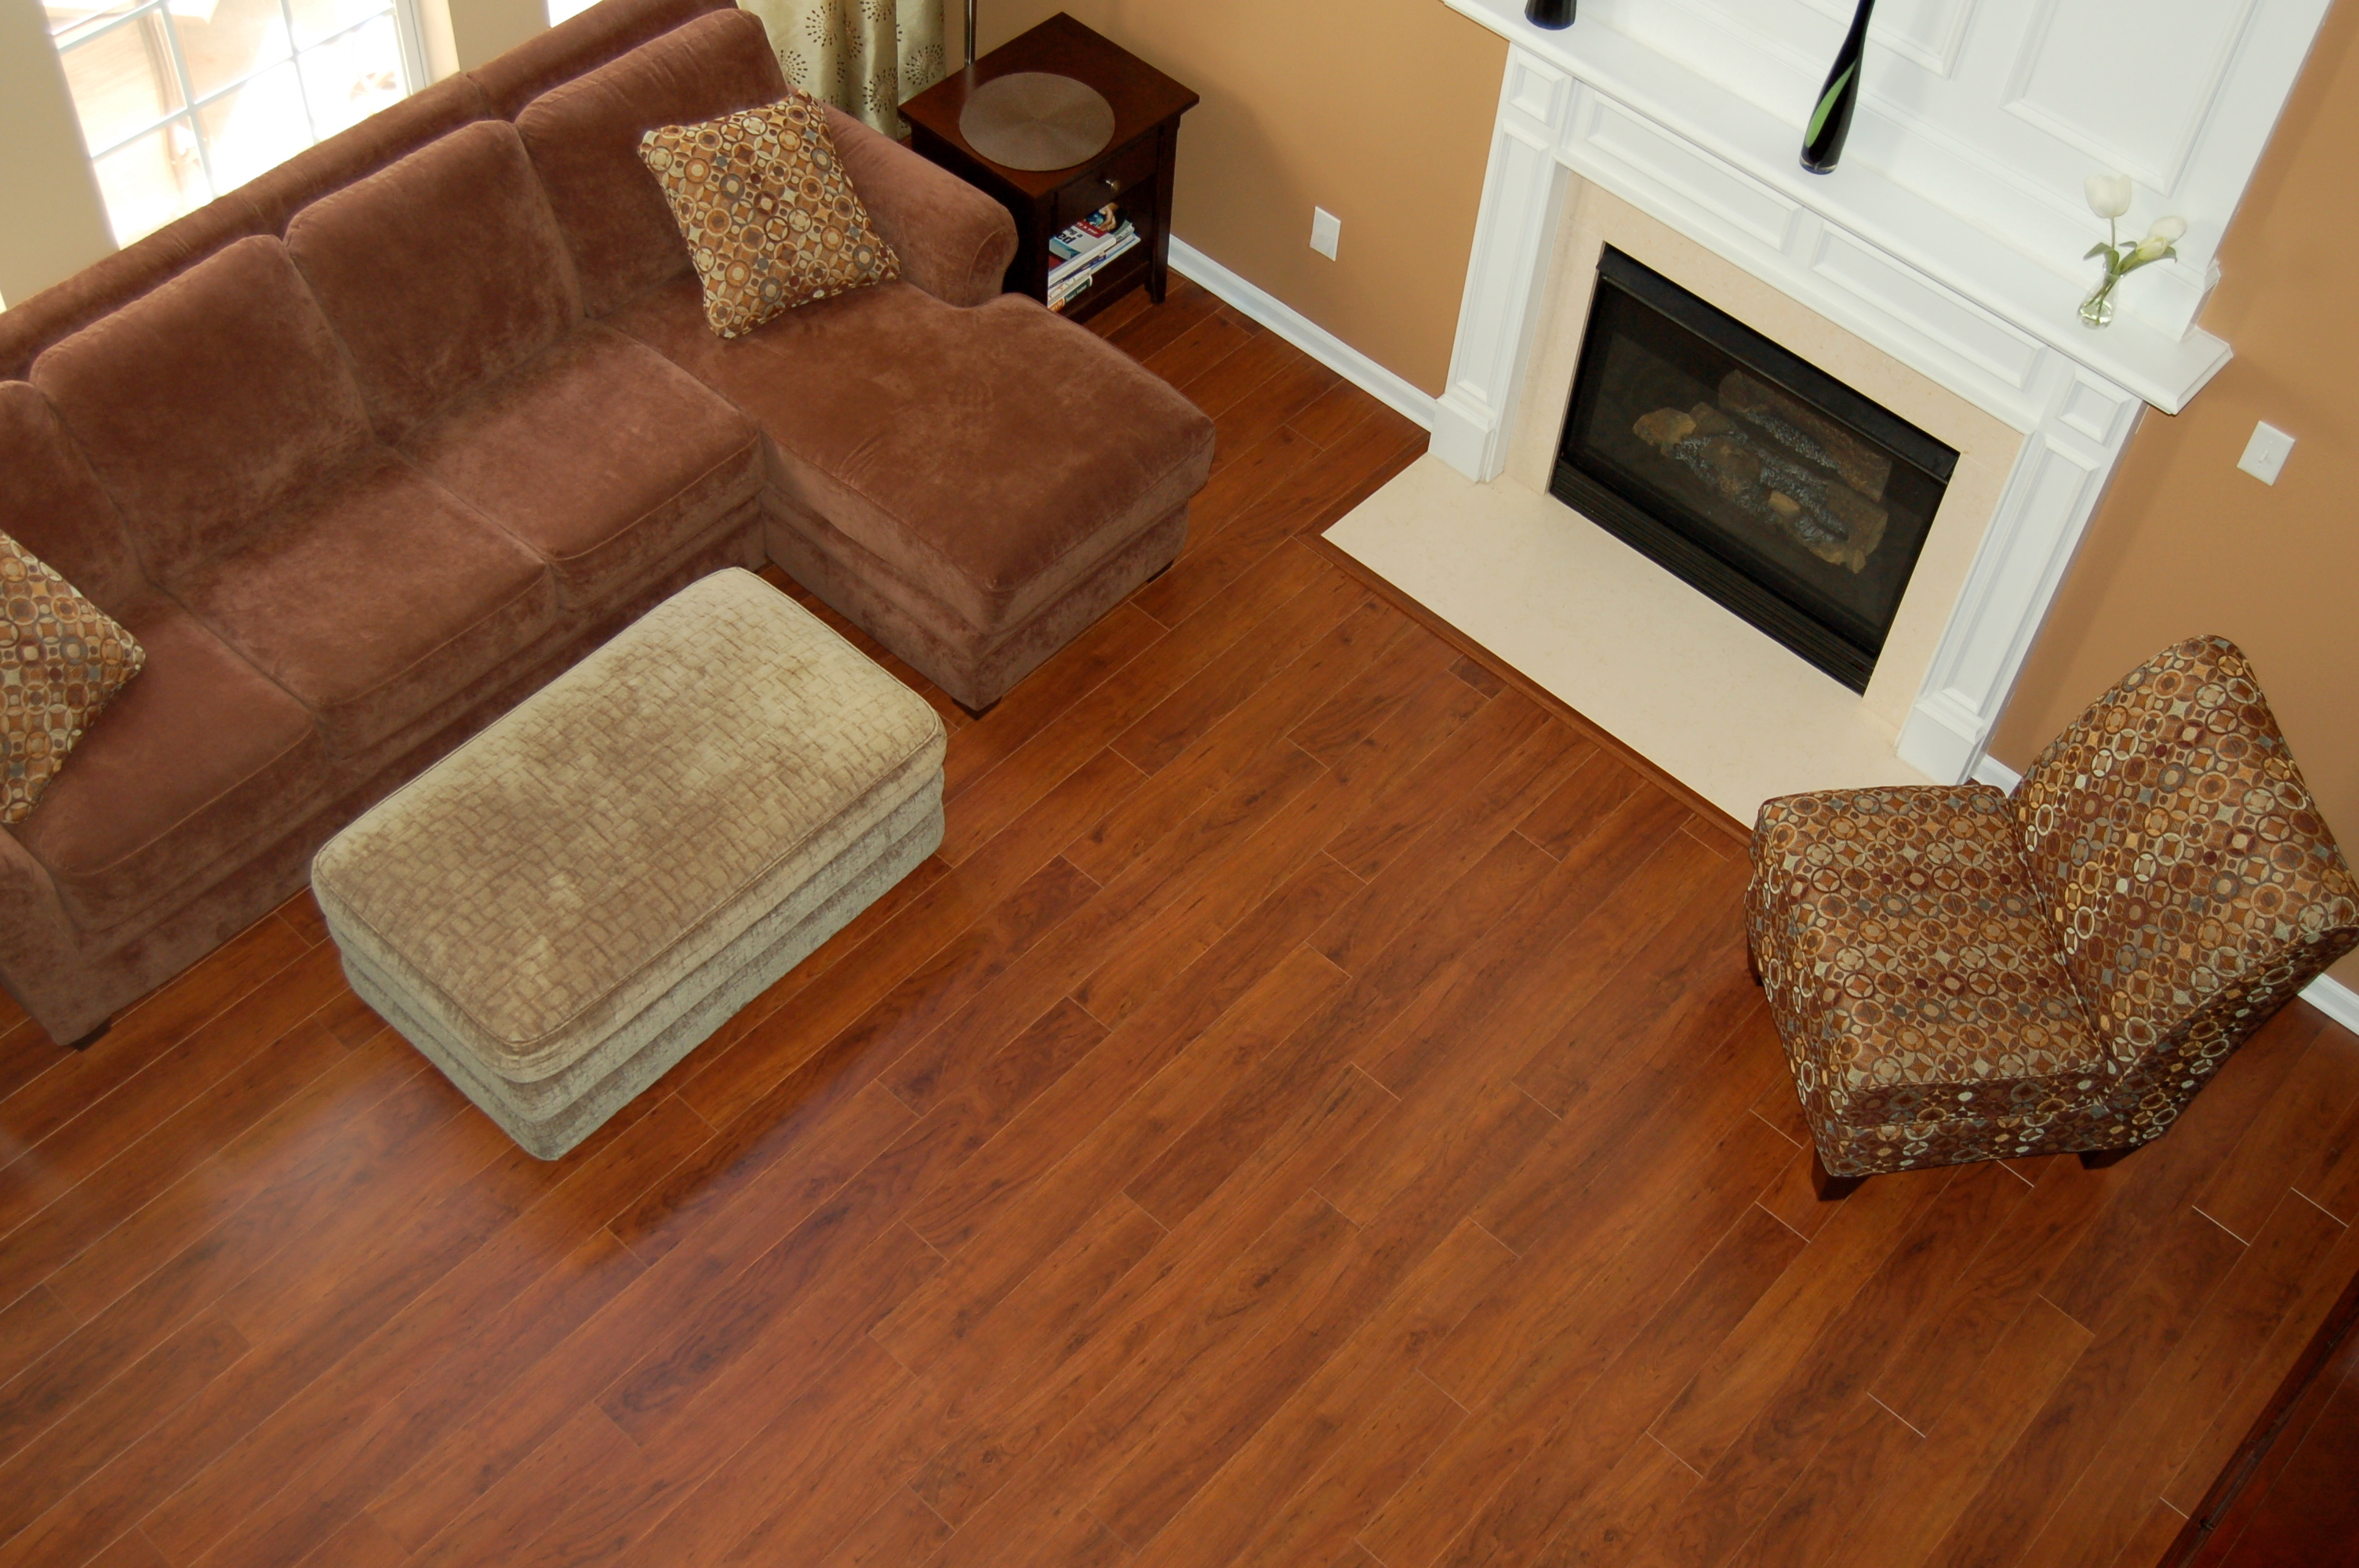 J wood flooring pineville nc 28134 angies list for Wood floor up to fireplace